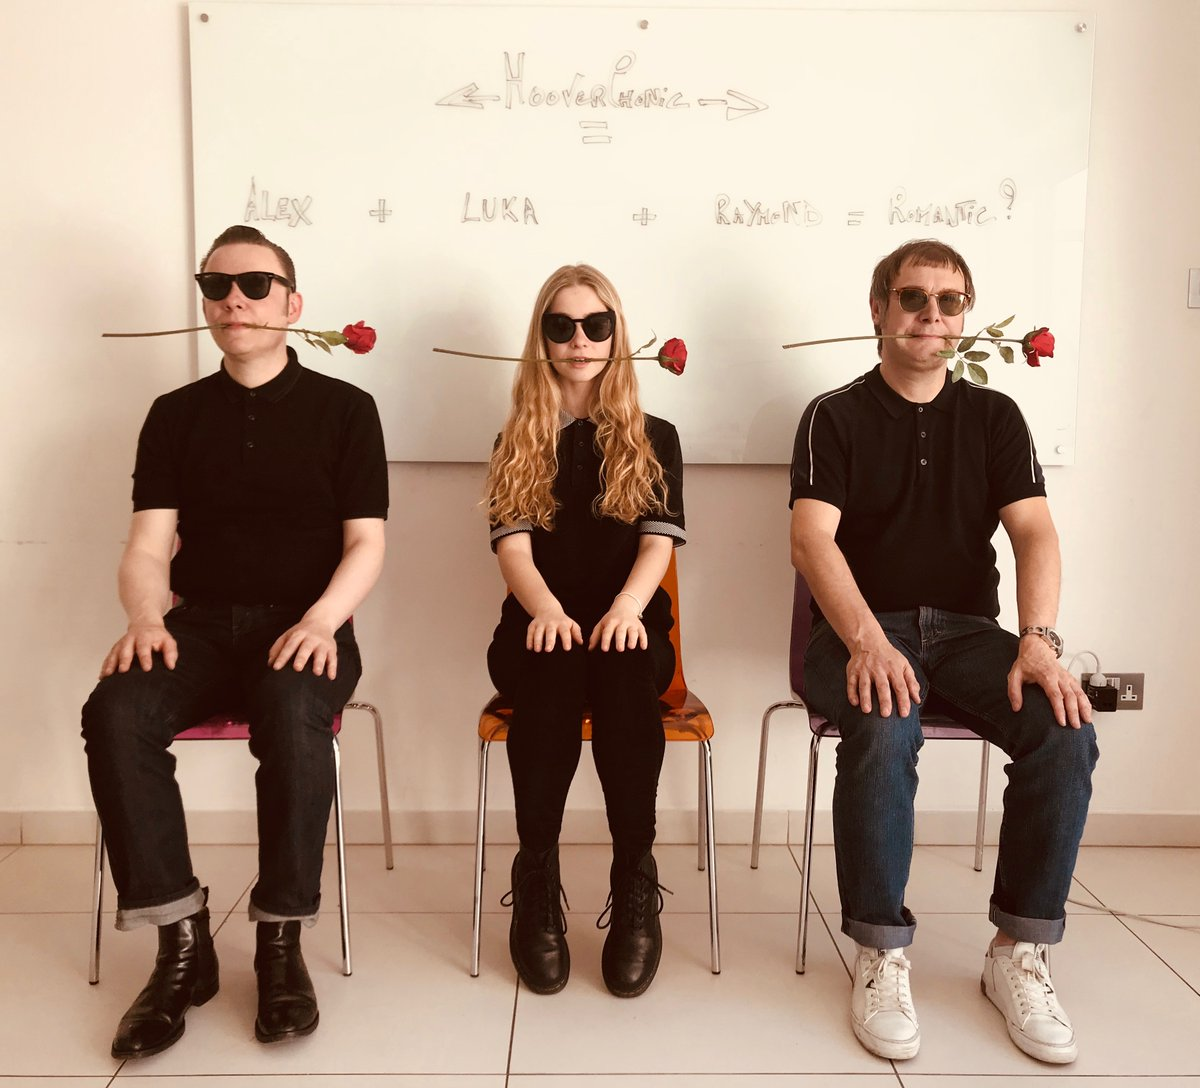 Mardi 5 Mars 2019 - Hooverphonic - Mad about you - Papapapam.fr